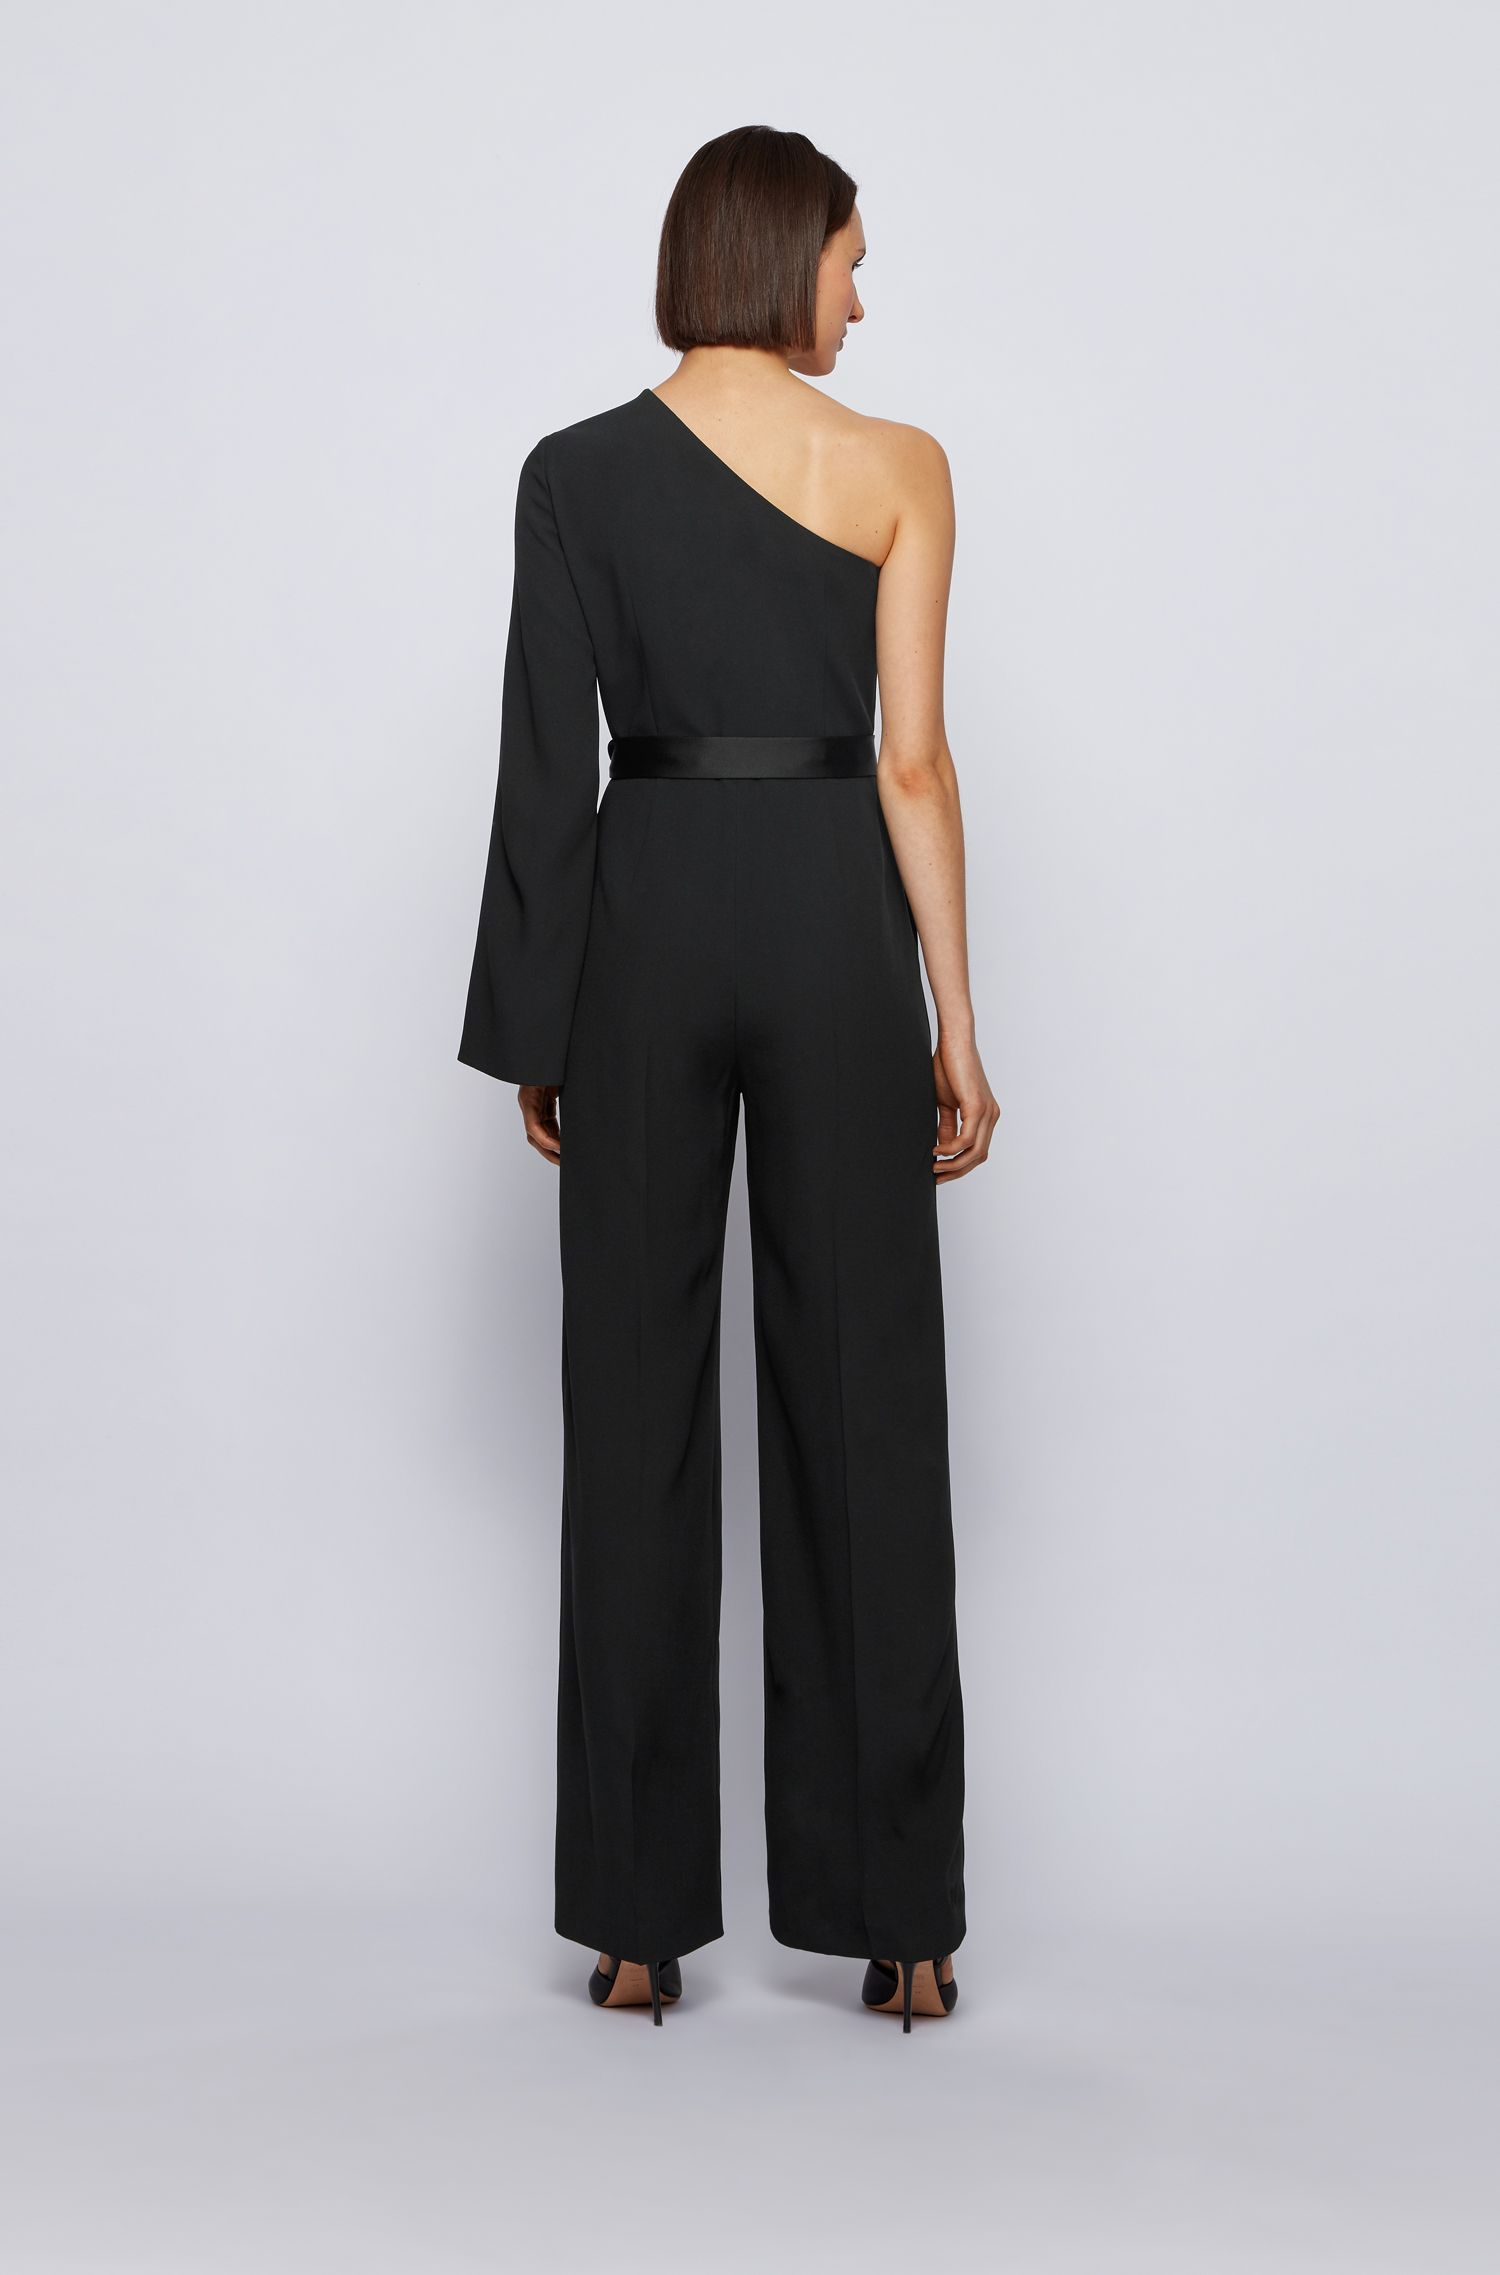 One-shoulder jumpsuit in crepe with satin back BOSS |  | 50442880001